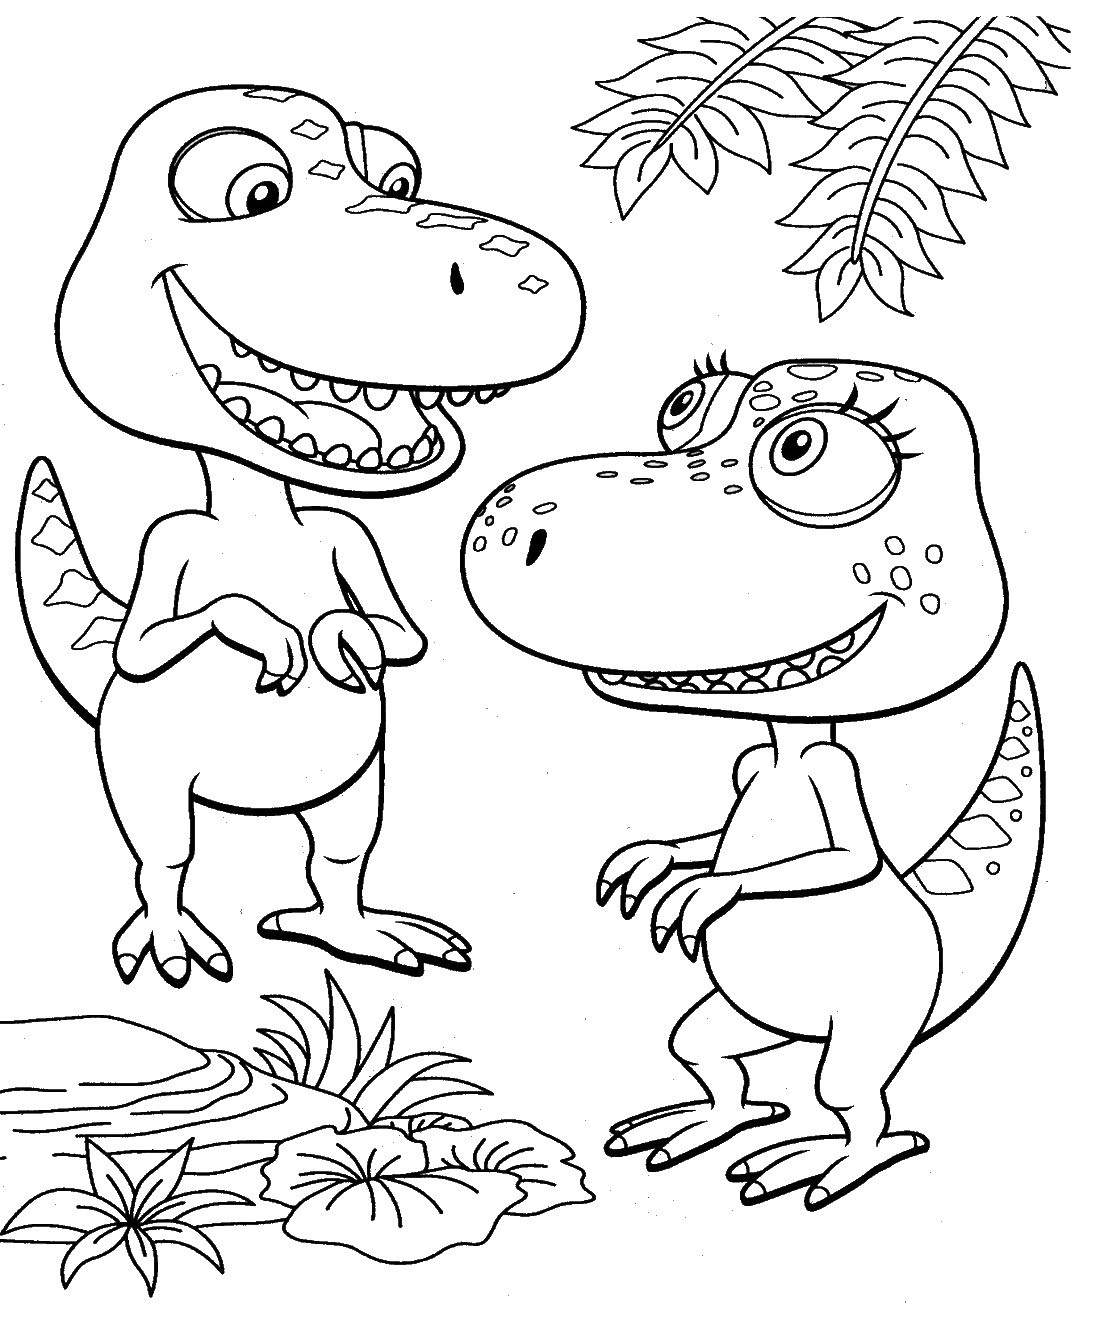 dino_train_coloring_pages